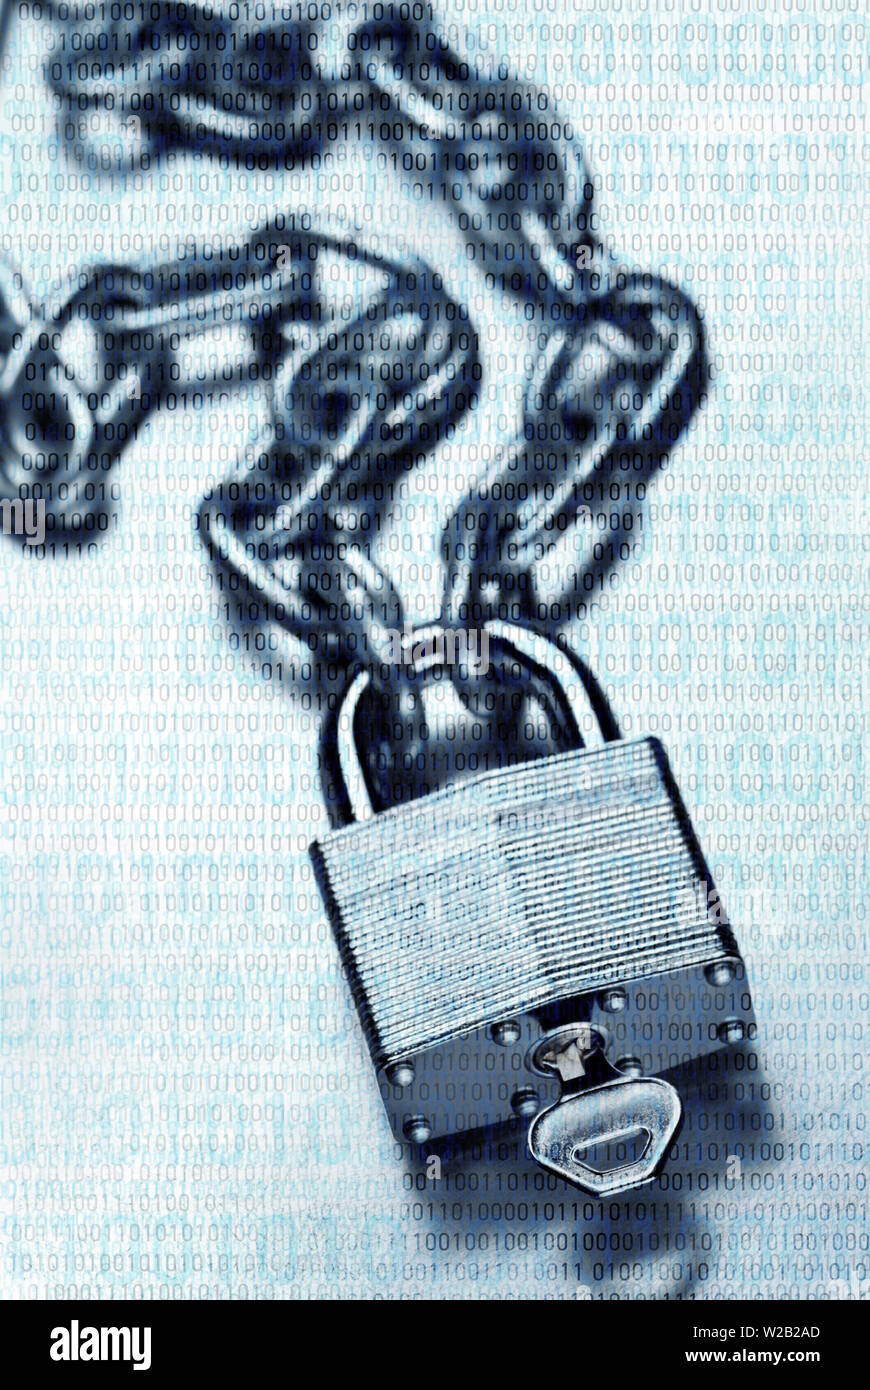 Digital security and encryption concept showing binary code overlaid on chain with steel padlock and key on scratched steel surface - Stock Image